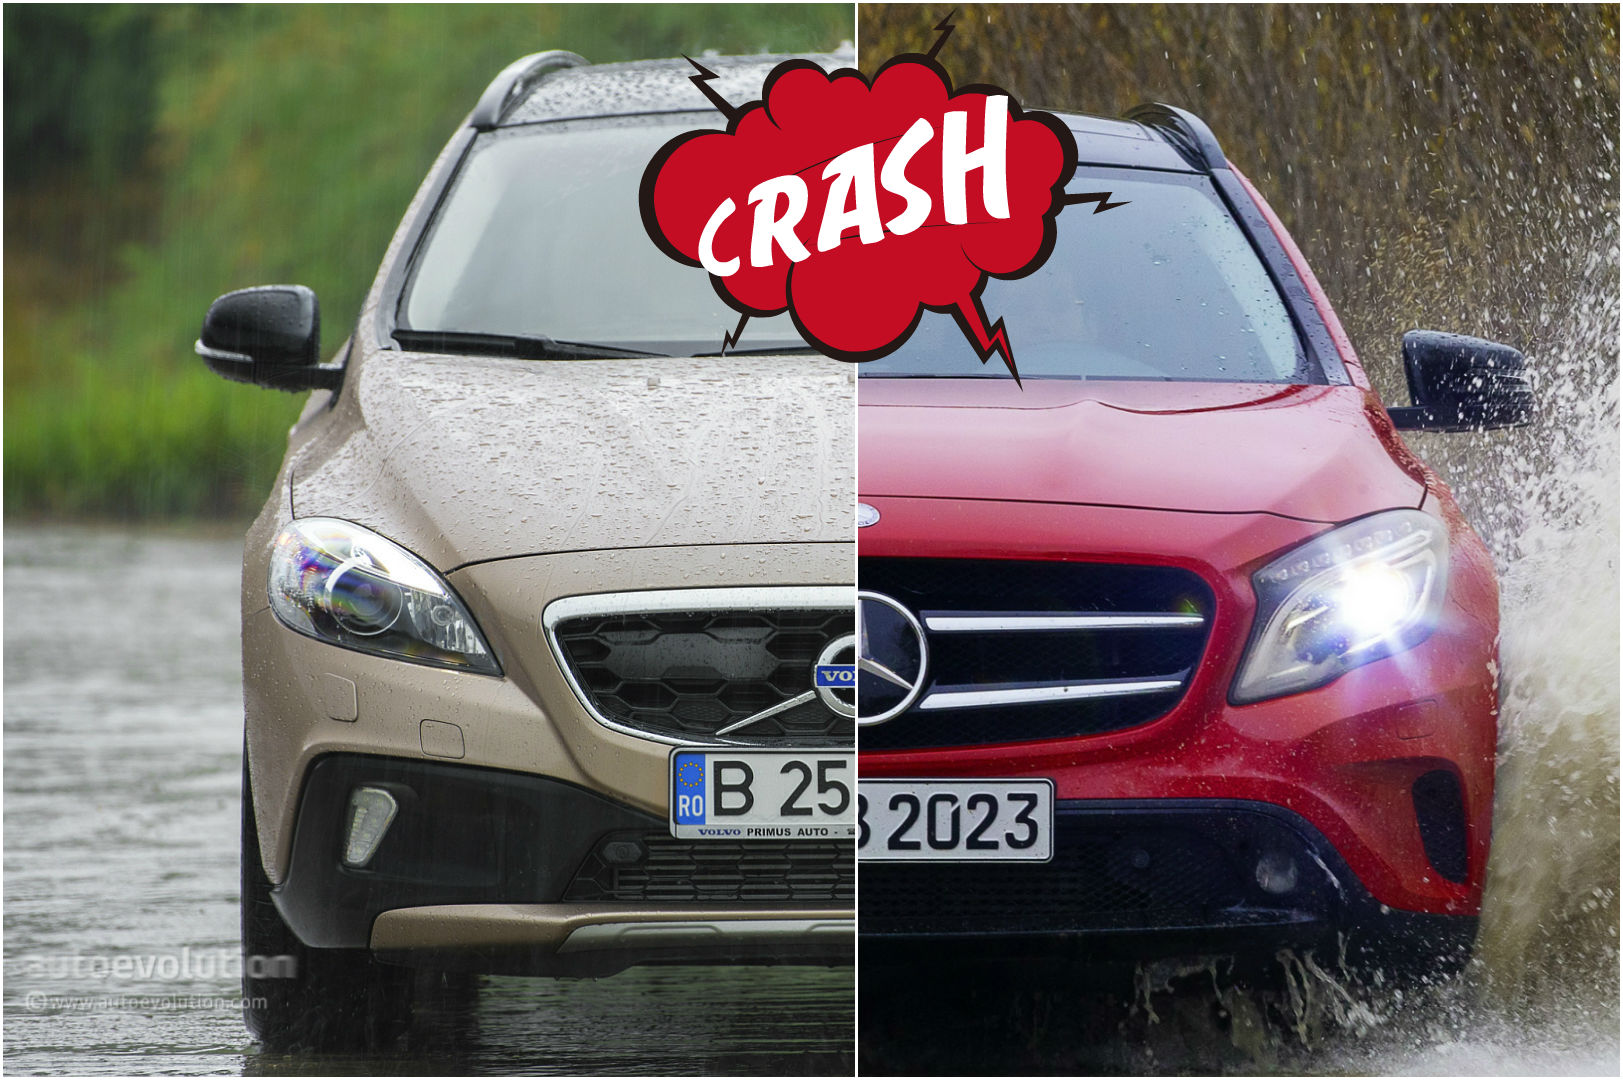 Mercedes GLA 220 CDI vs Volvo V40 Cross Country D4: the Cross-Hatch Comparison - autoevolution